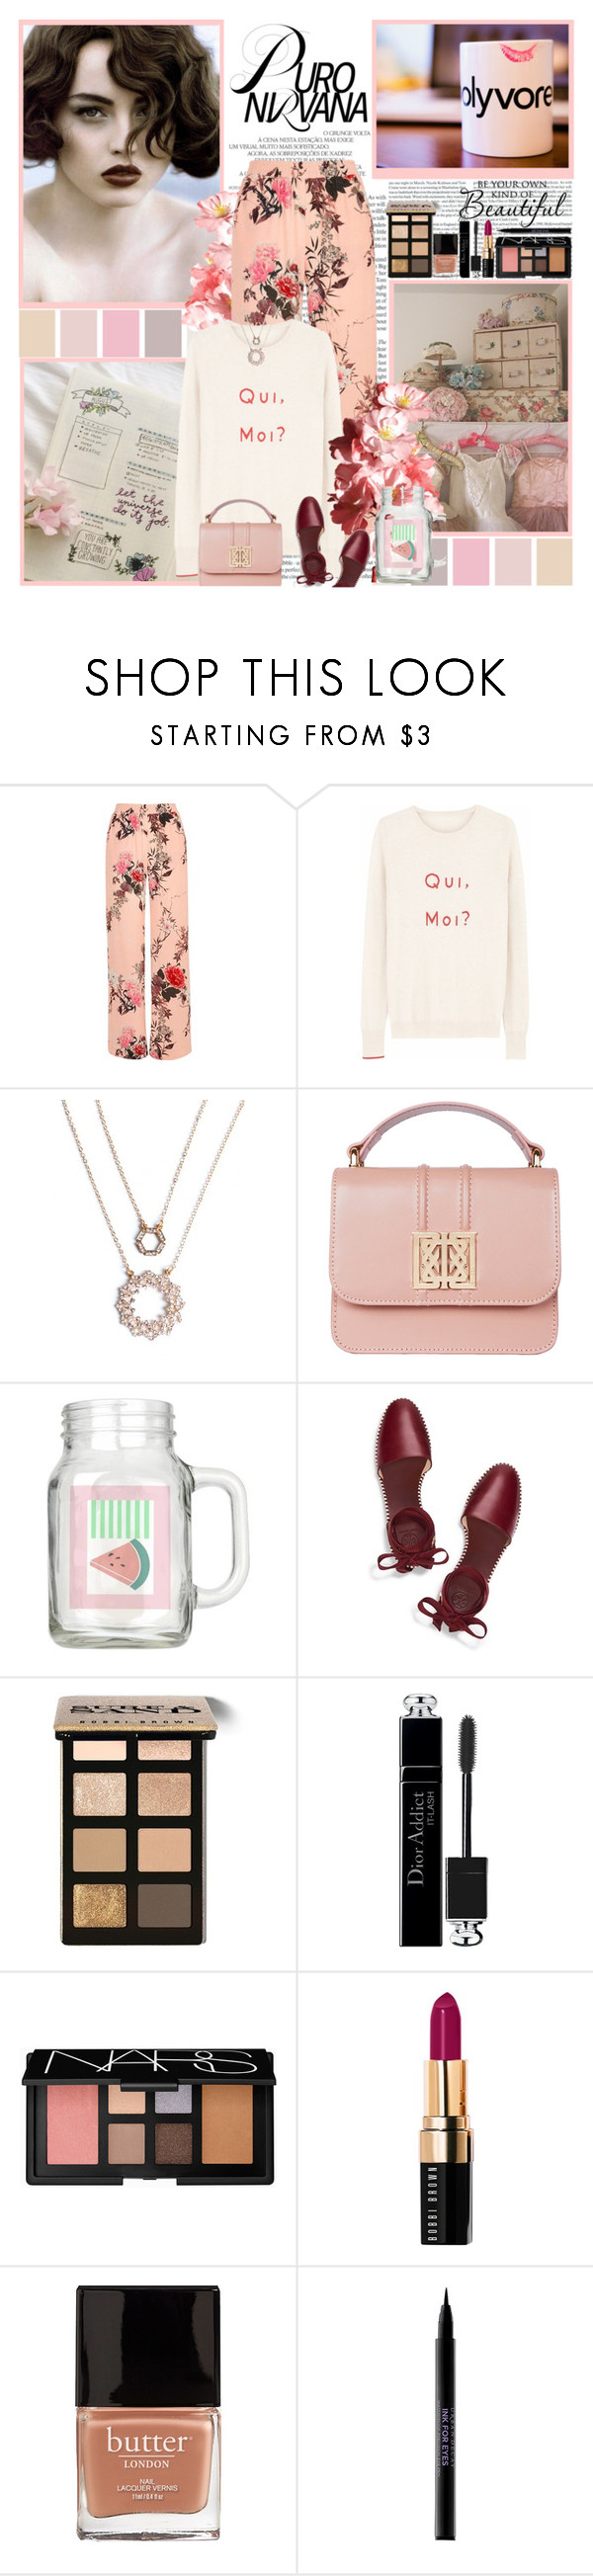 """""""Polyvore Fix"""" by molly2222 ❤ liked on Polyvore featuring River Island, Ille De Cocos, Tory Burch, Bobbi Brown Cosmetics, Christian Dior, NARS Cosmetics, Butter London and Urban Decay"""